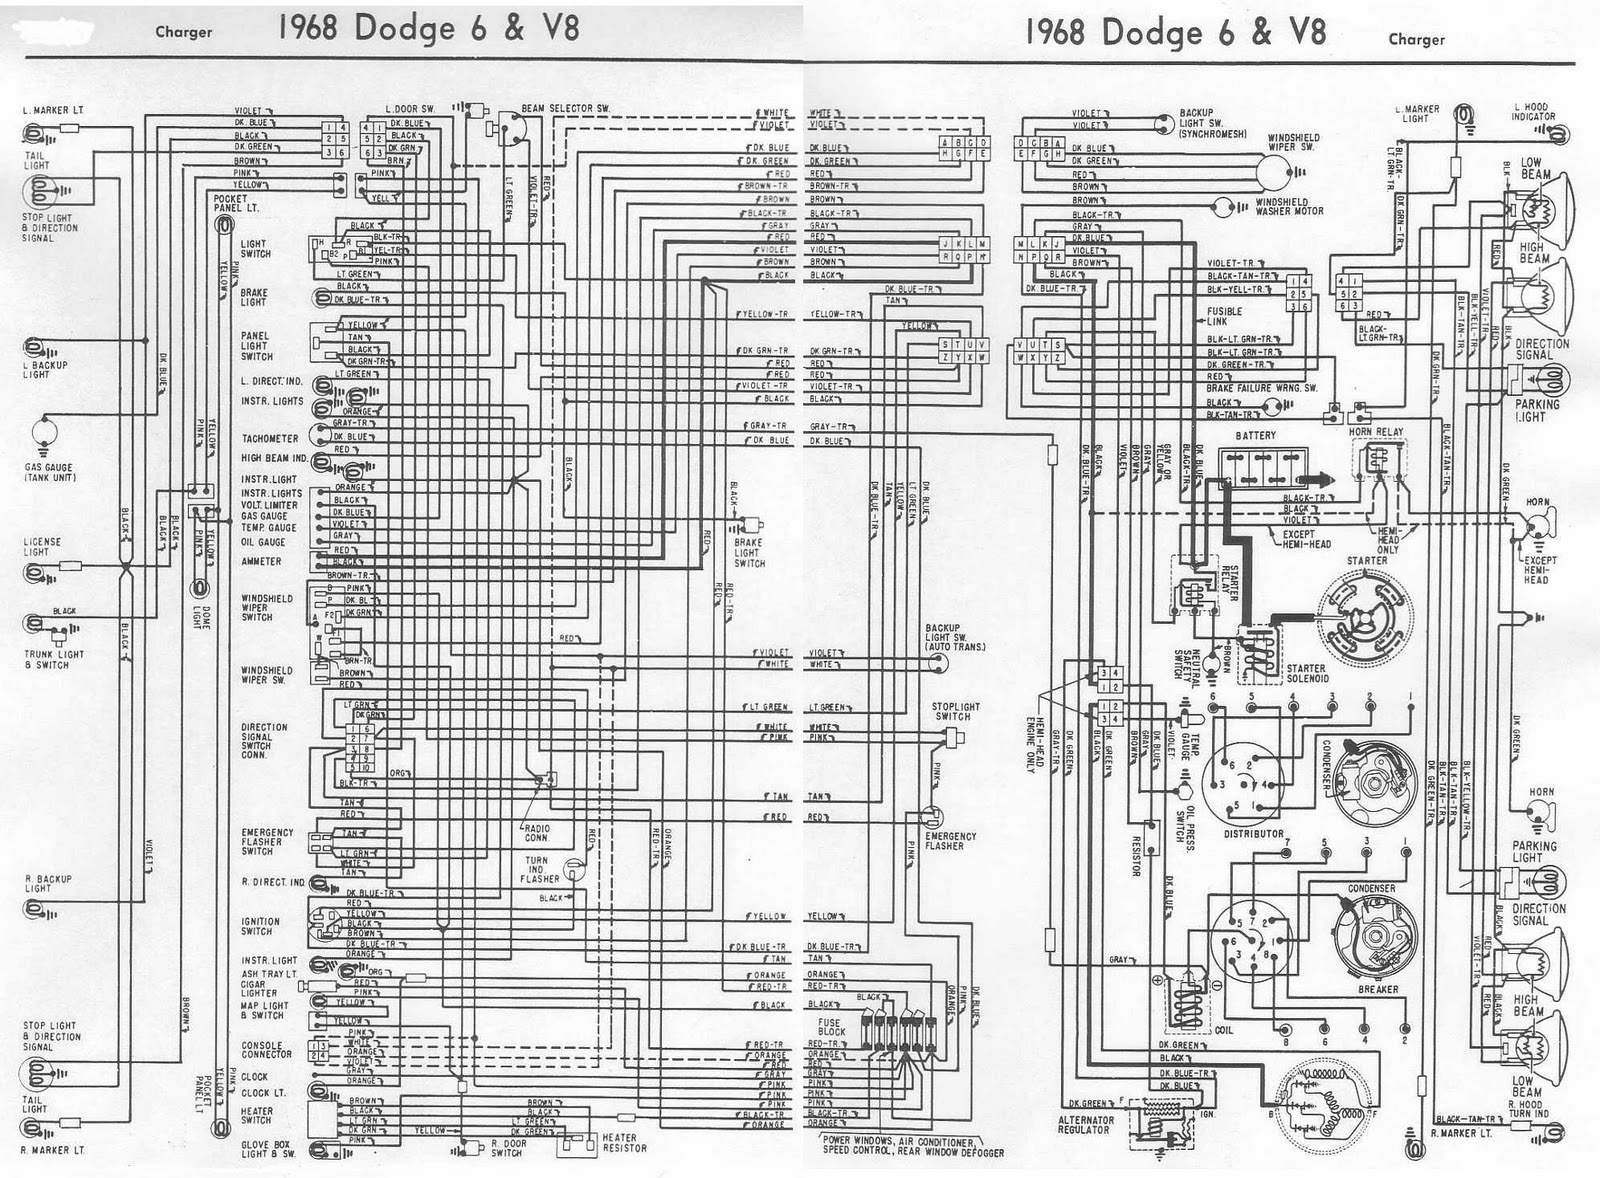 dodge charger 1968 6 and v8 complete electrical wiring diagram all about wiring diagrams